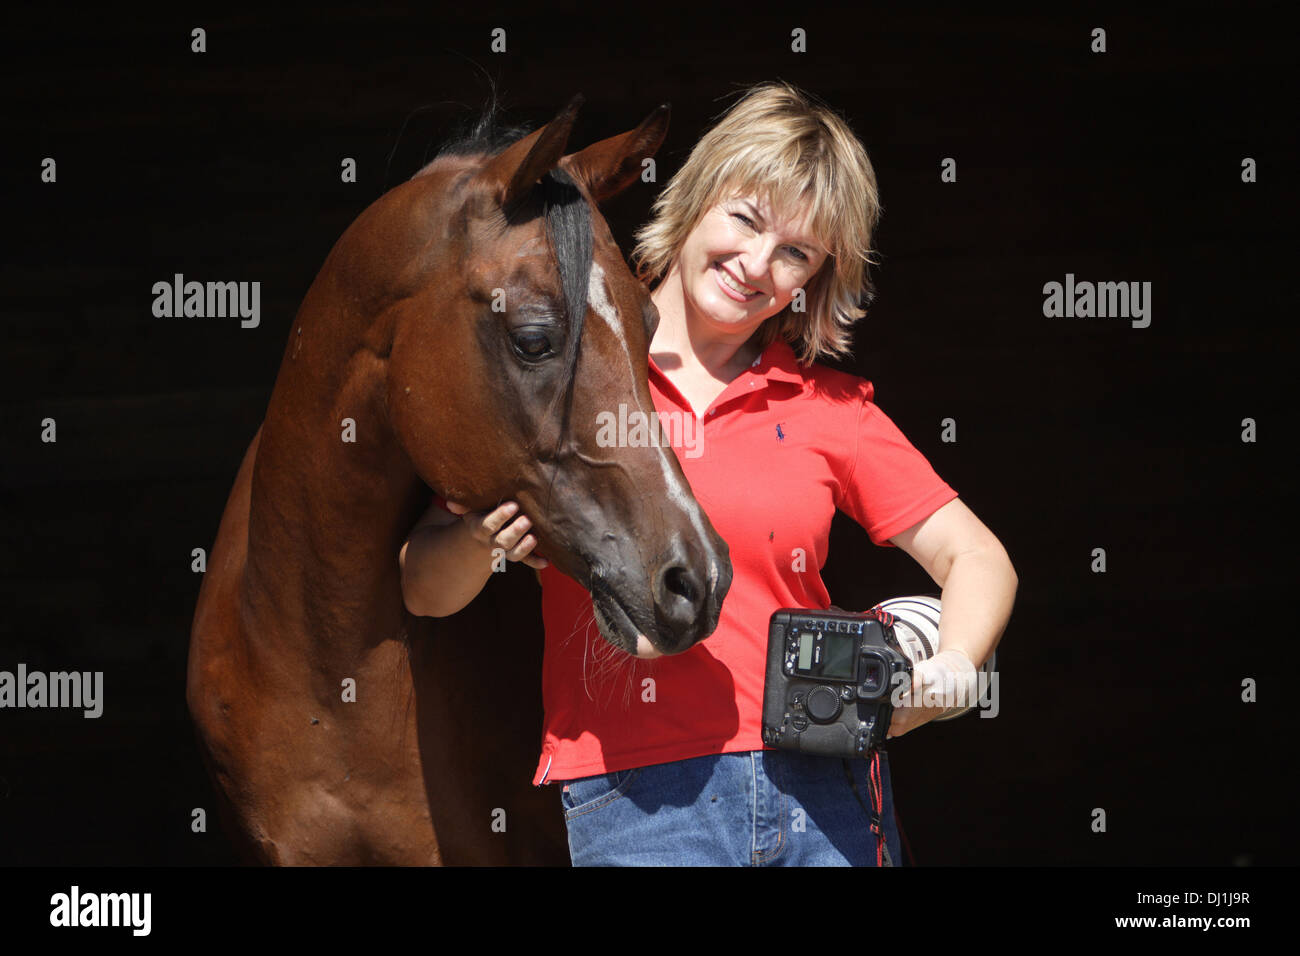 Professional Photographer And Family High Resolution Stock Photography And Images Alamy